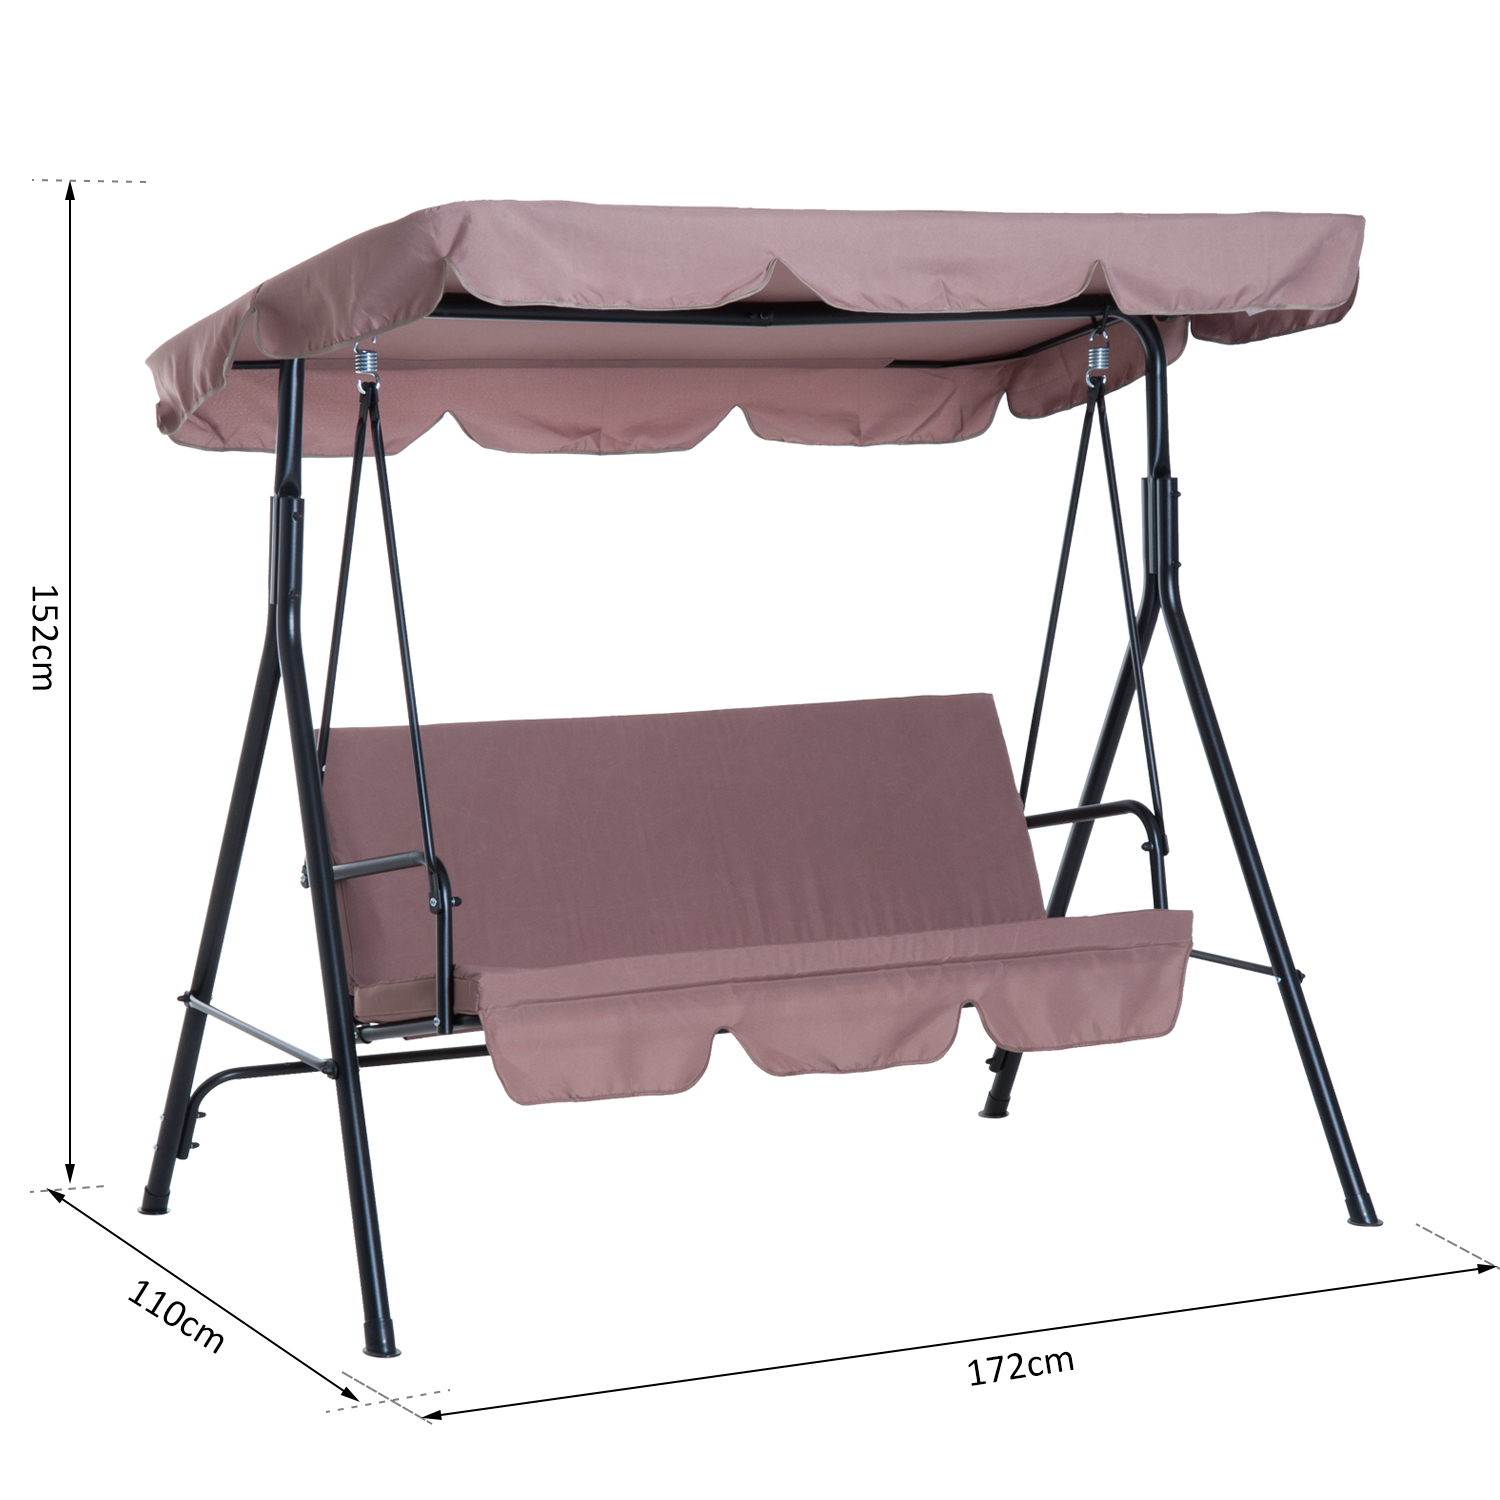 Garden-Hammock-Swing-Chair-Backyard-3-Seater-Adjustable-Canopy-Patio-Outdoor thumbnail 15